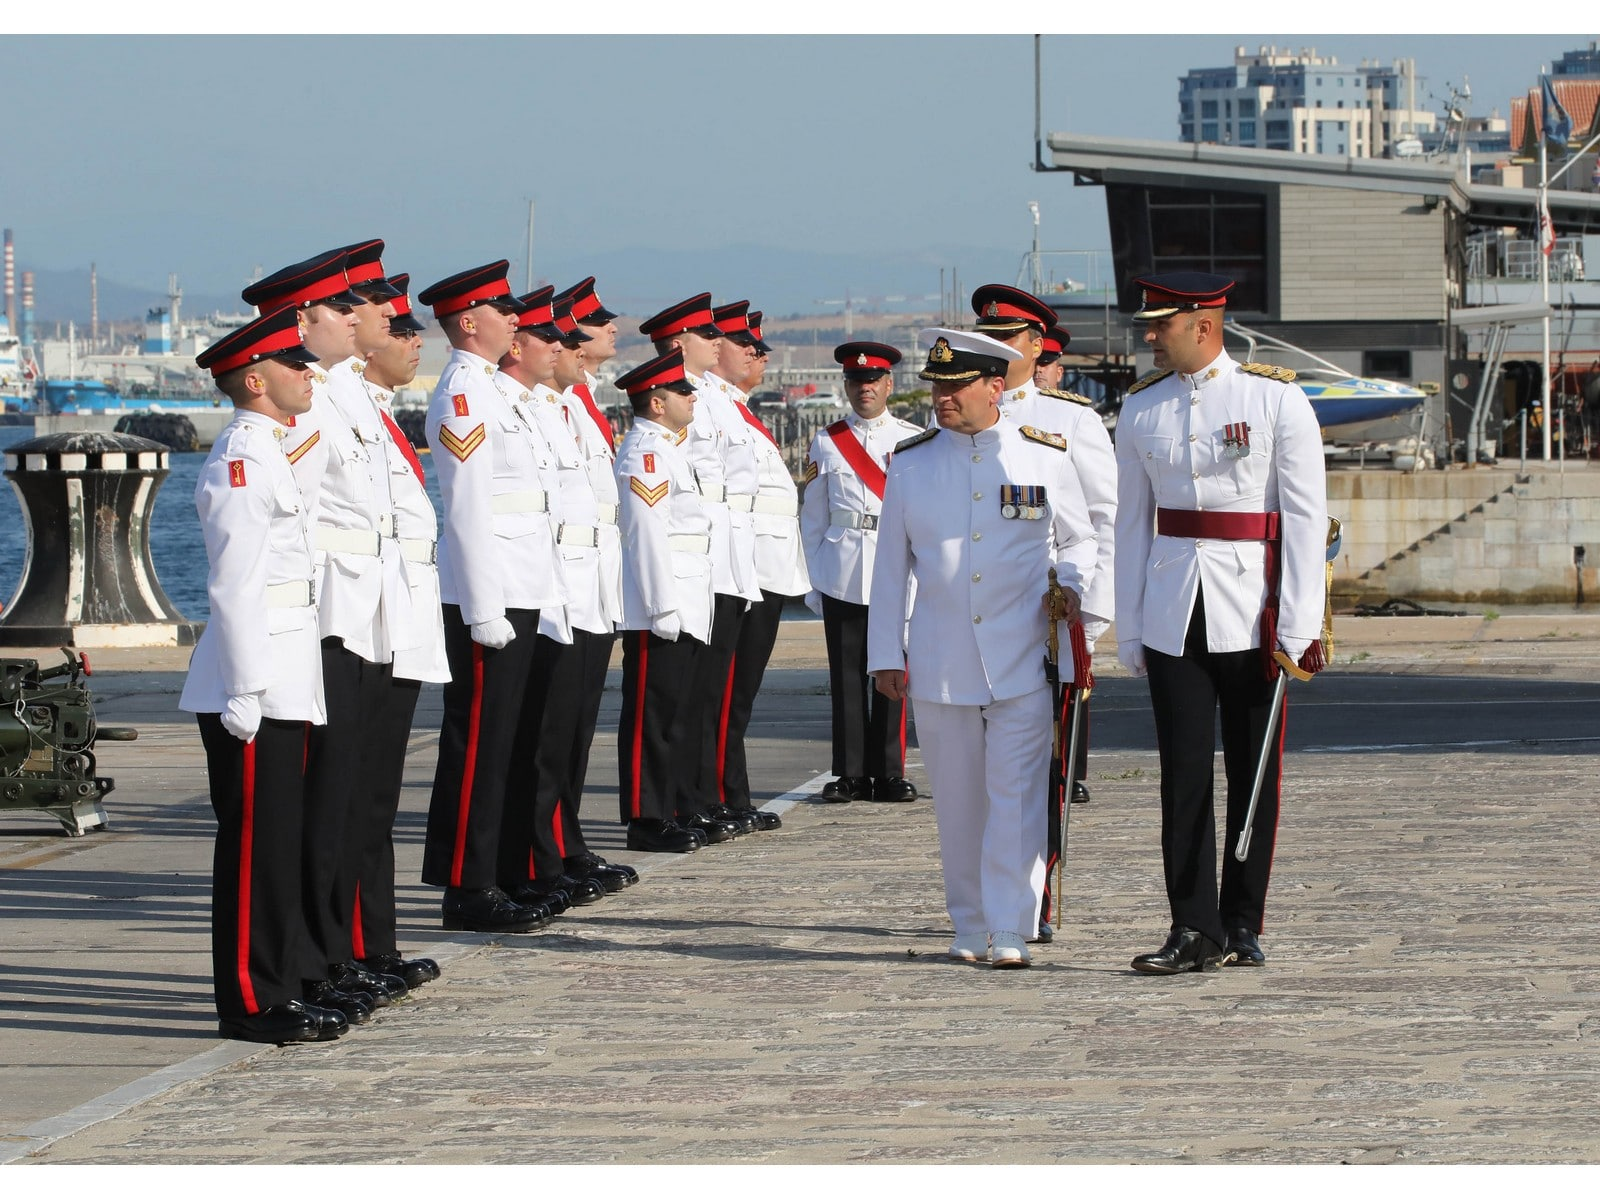 Ceremony of the Change of of Commander British Forces in Gibraltar. Commodore Mike Walliker OBE RN, was replaced by commodore Tim Henry RN as CB.The ceremony was marked with a 11 gun salute outside The Tower HMNB Gibraltar hosted by the Royal Gibraltar Regiment.